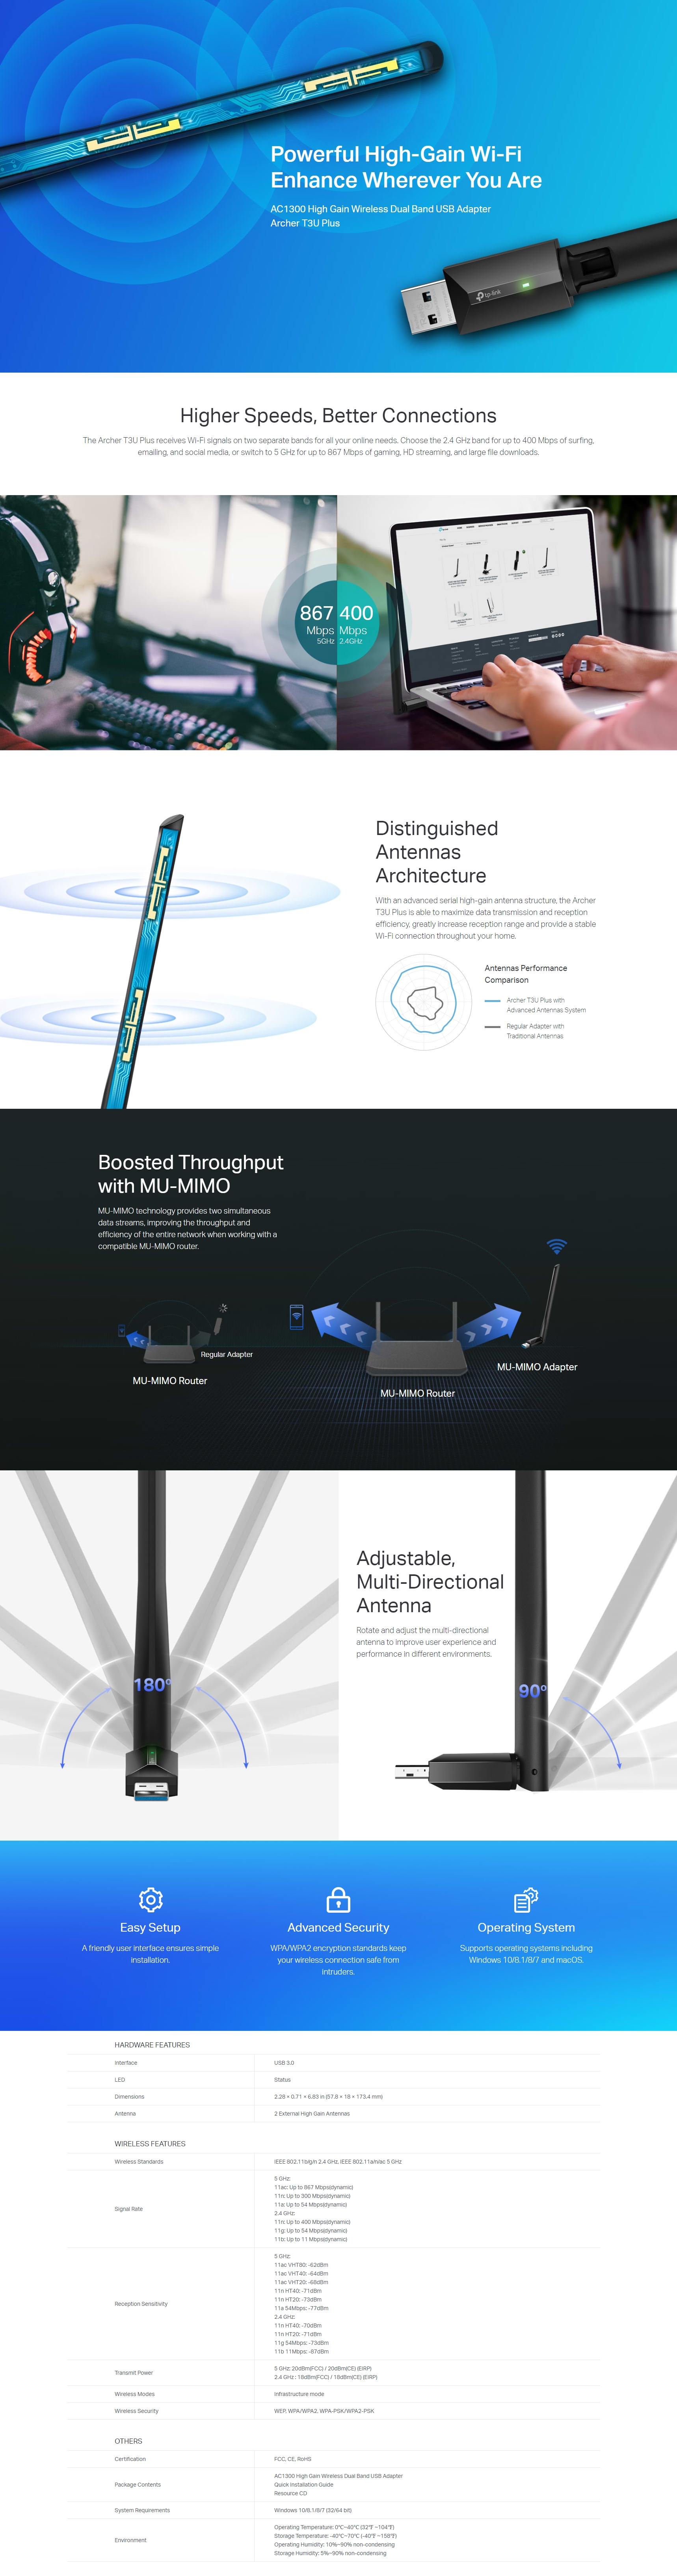 A large marketing image providing additional information about the product TP-LINK Archer T3U Plus AC1300 Dual Band Wireless USB Adapter - Additional alt info not provided